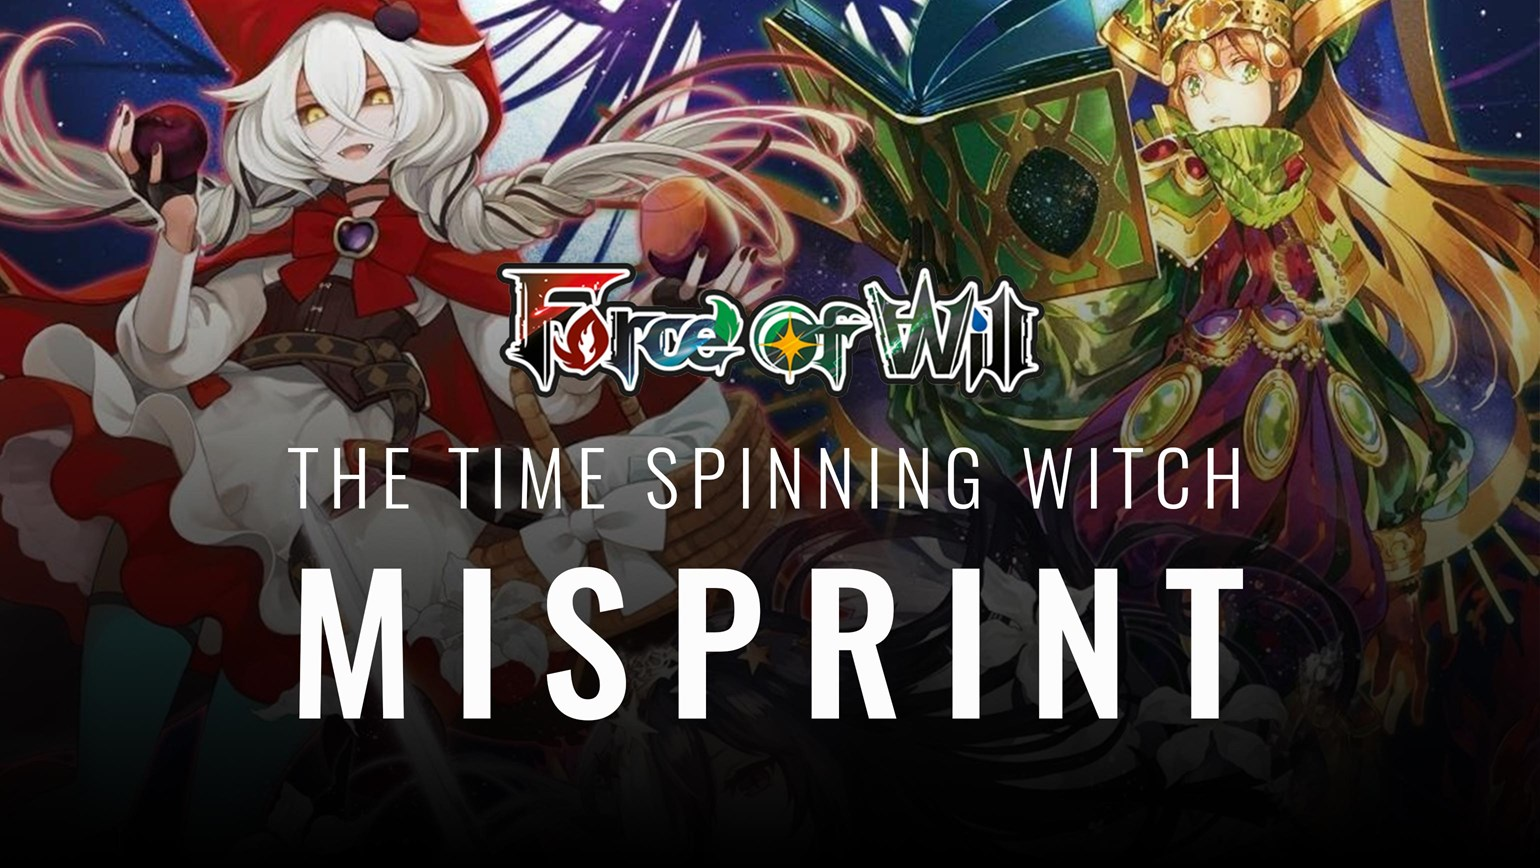 Force of Will Announces Time Spinning Witch Misprint